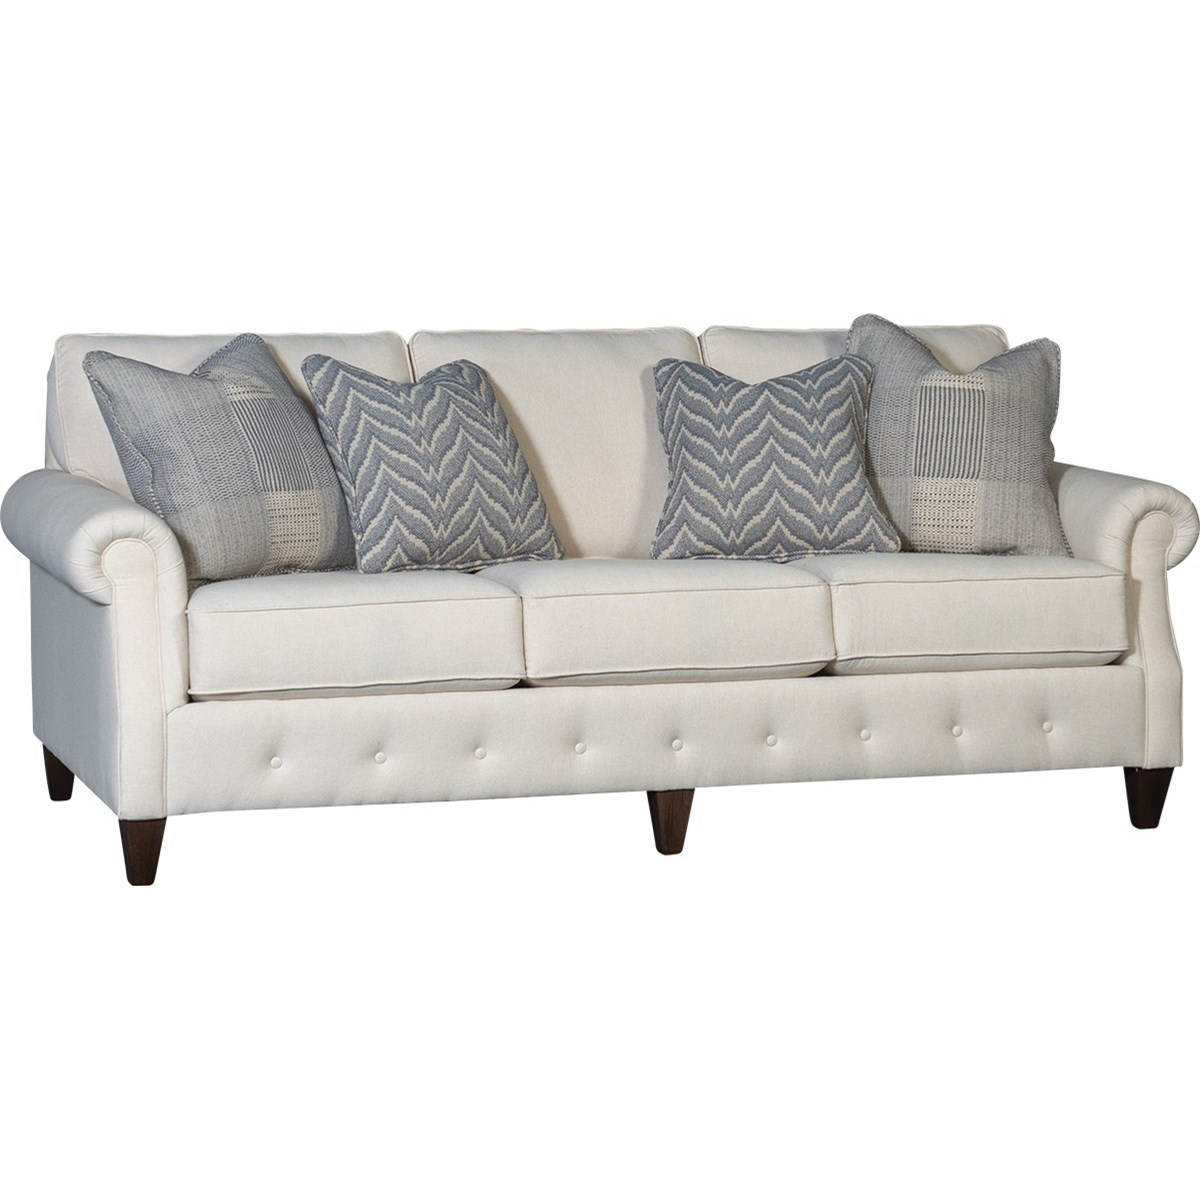 4040 Transitional Sofa by Mayo at Wilson's Furniture